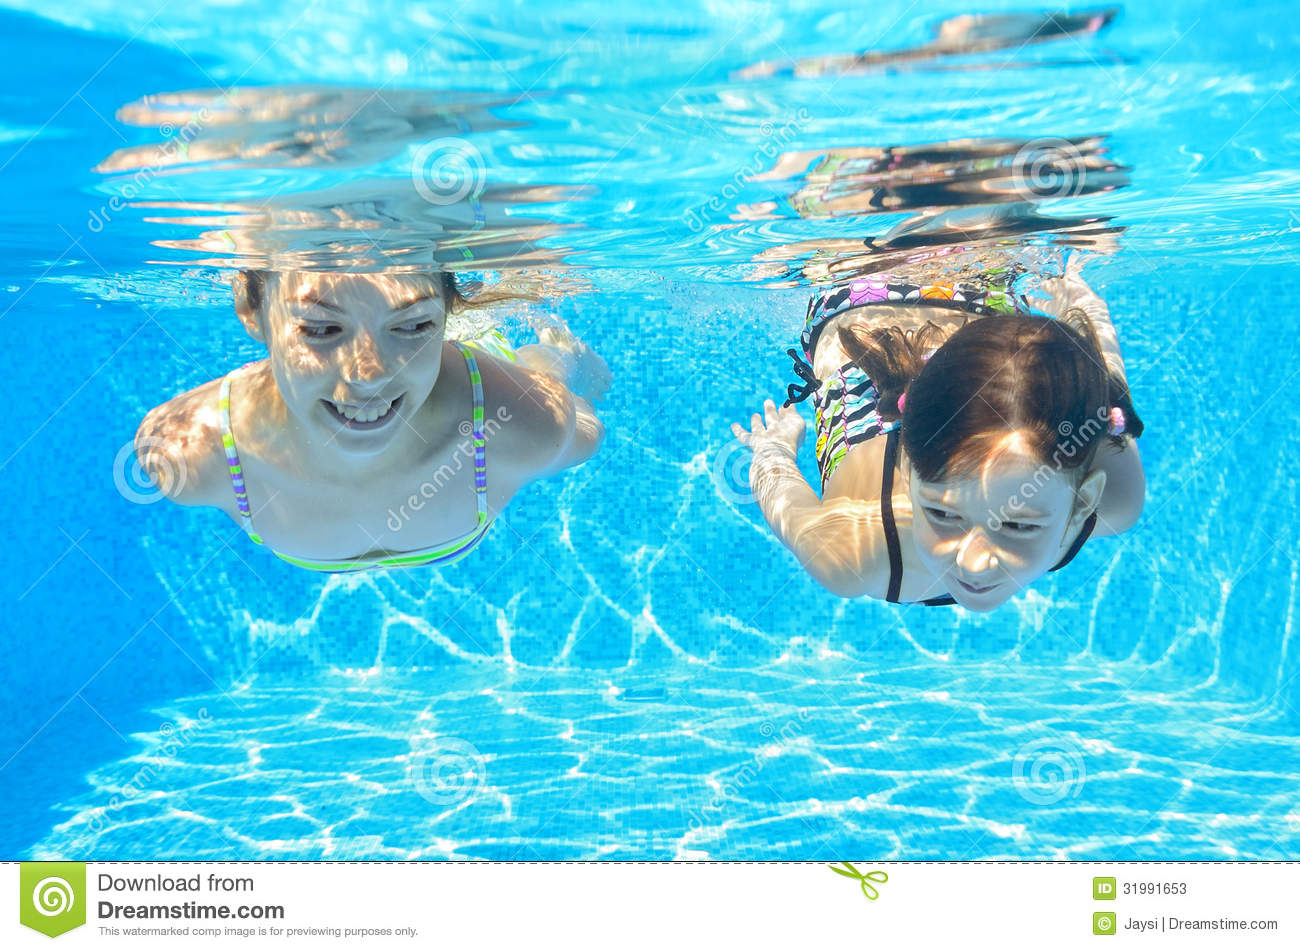 Kids Swimming Underwater two children swimming underwater pool stock photos, images